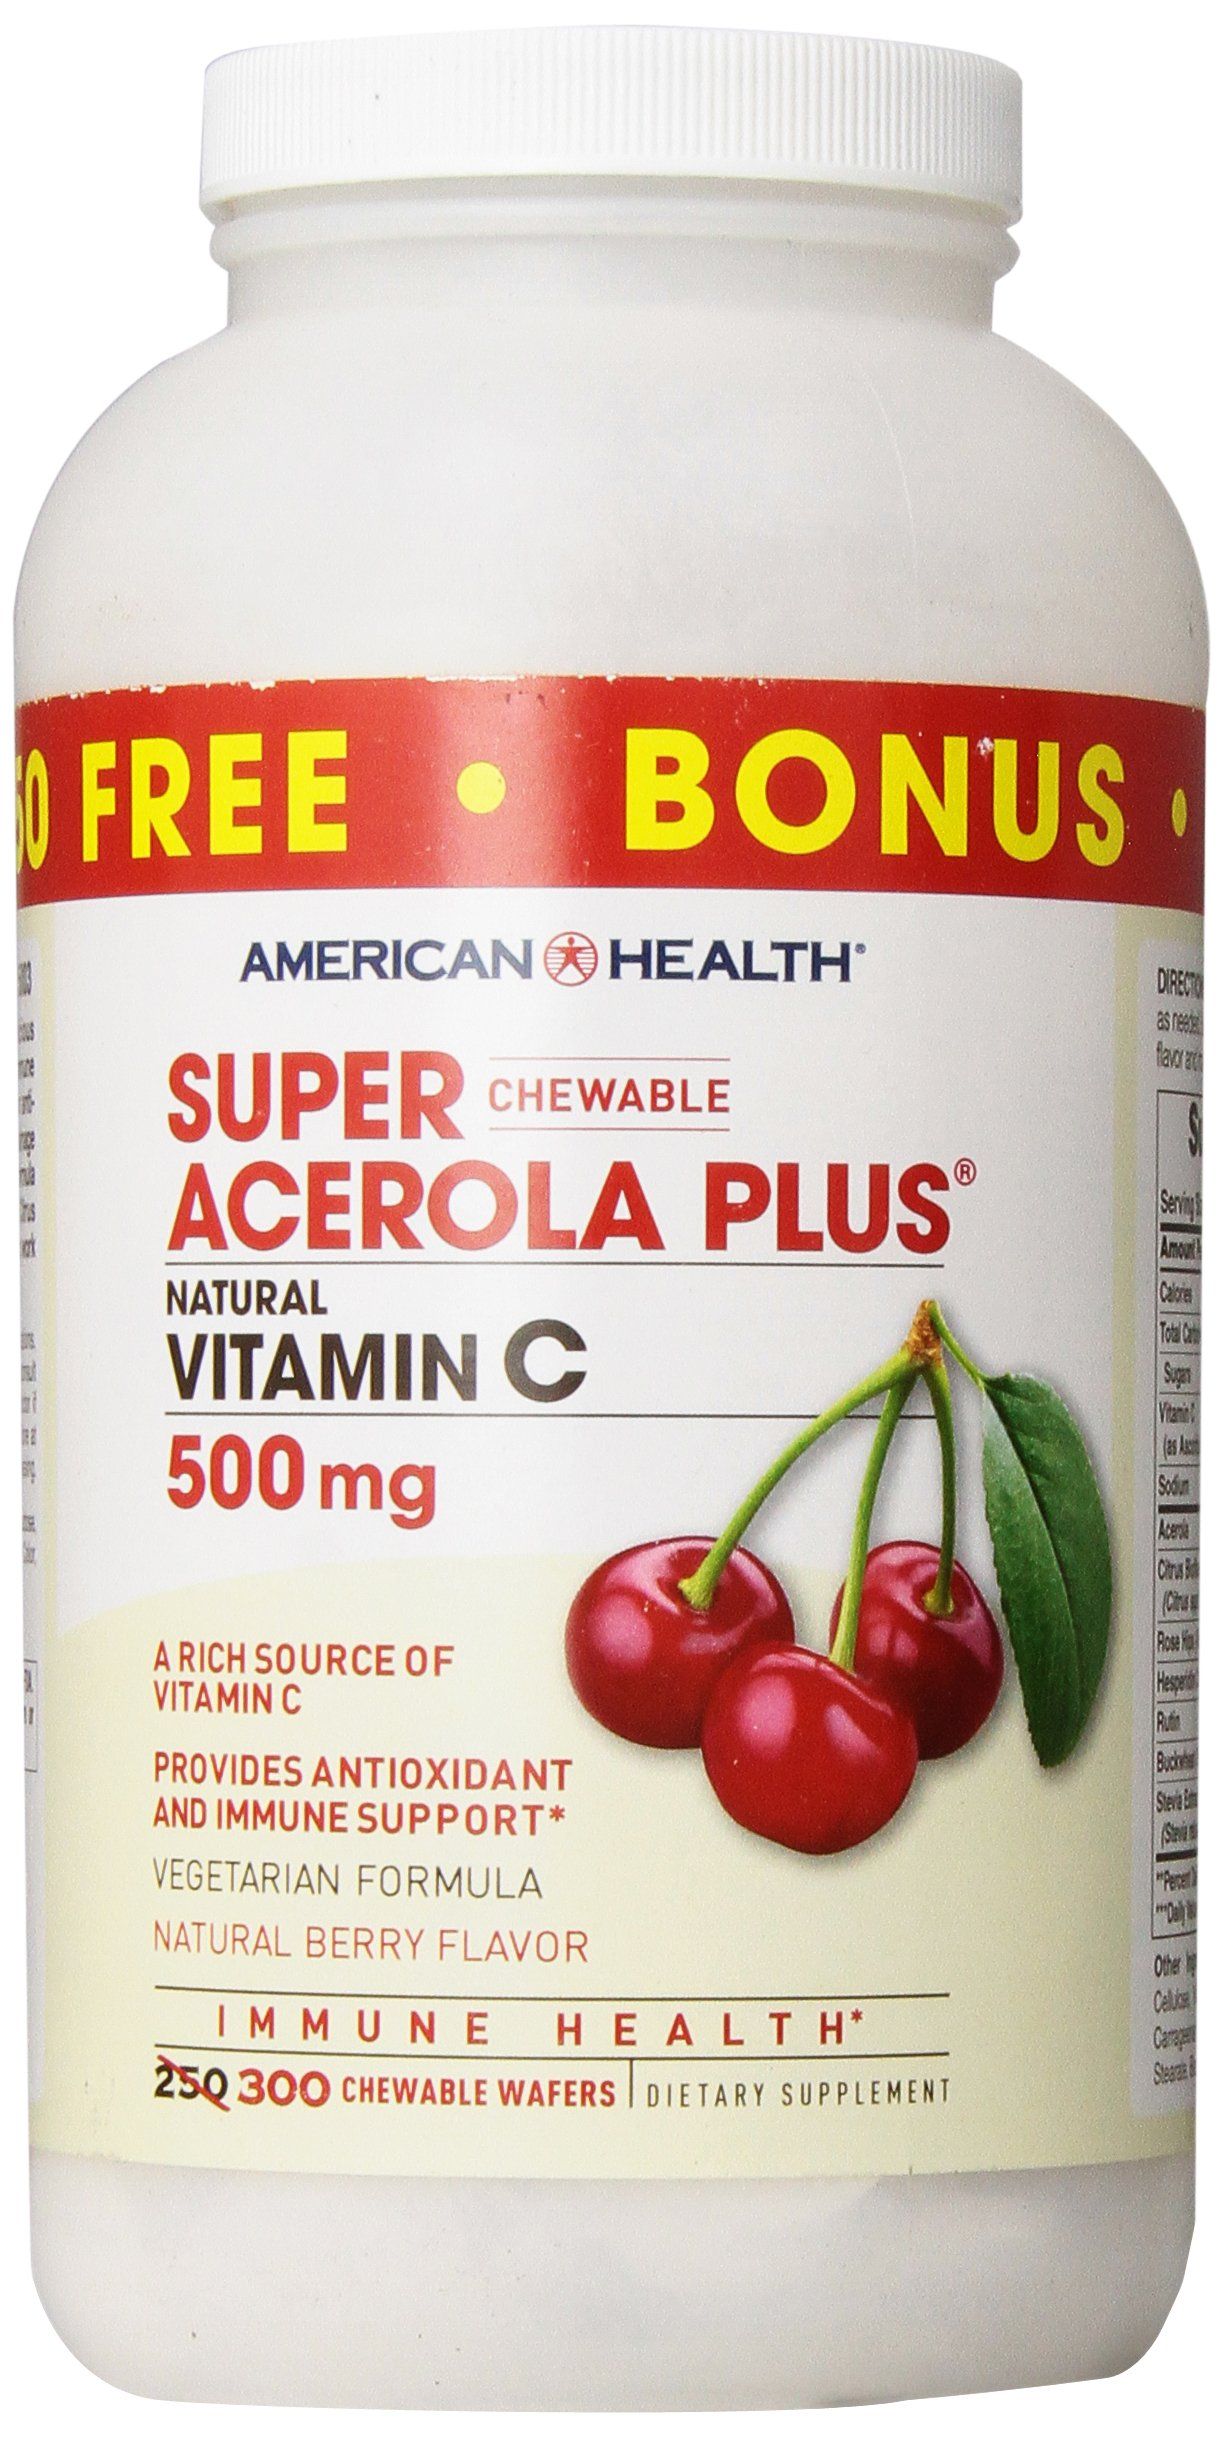 American Health Super Acerola Plus Chewable Wafers, Natural Berry Flavored Vitamin C - Provides Antioxidant & Immune Support - 500 mg, 300 Total Servings